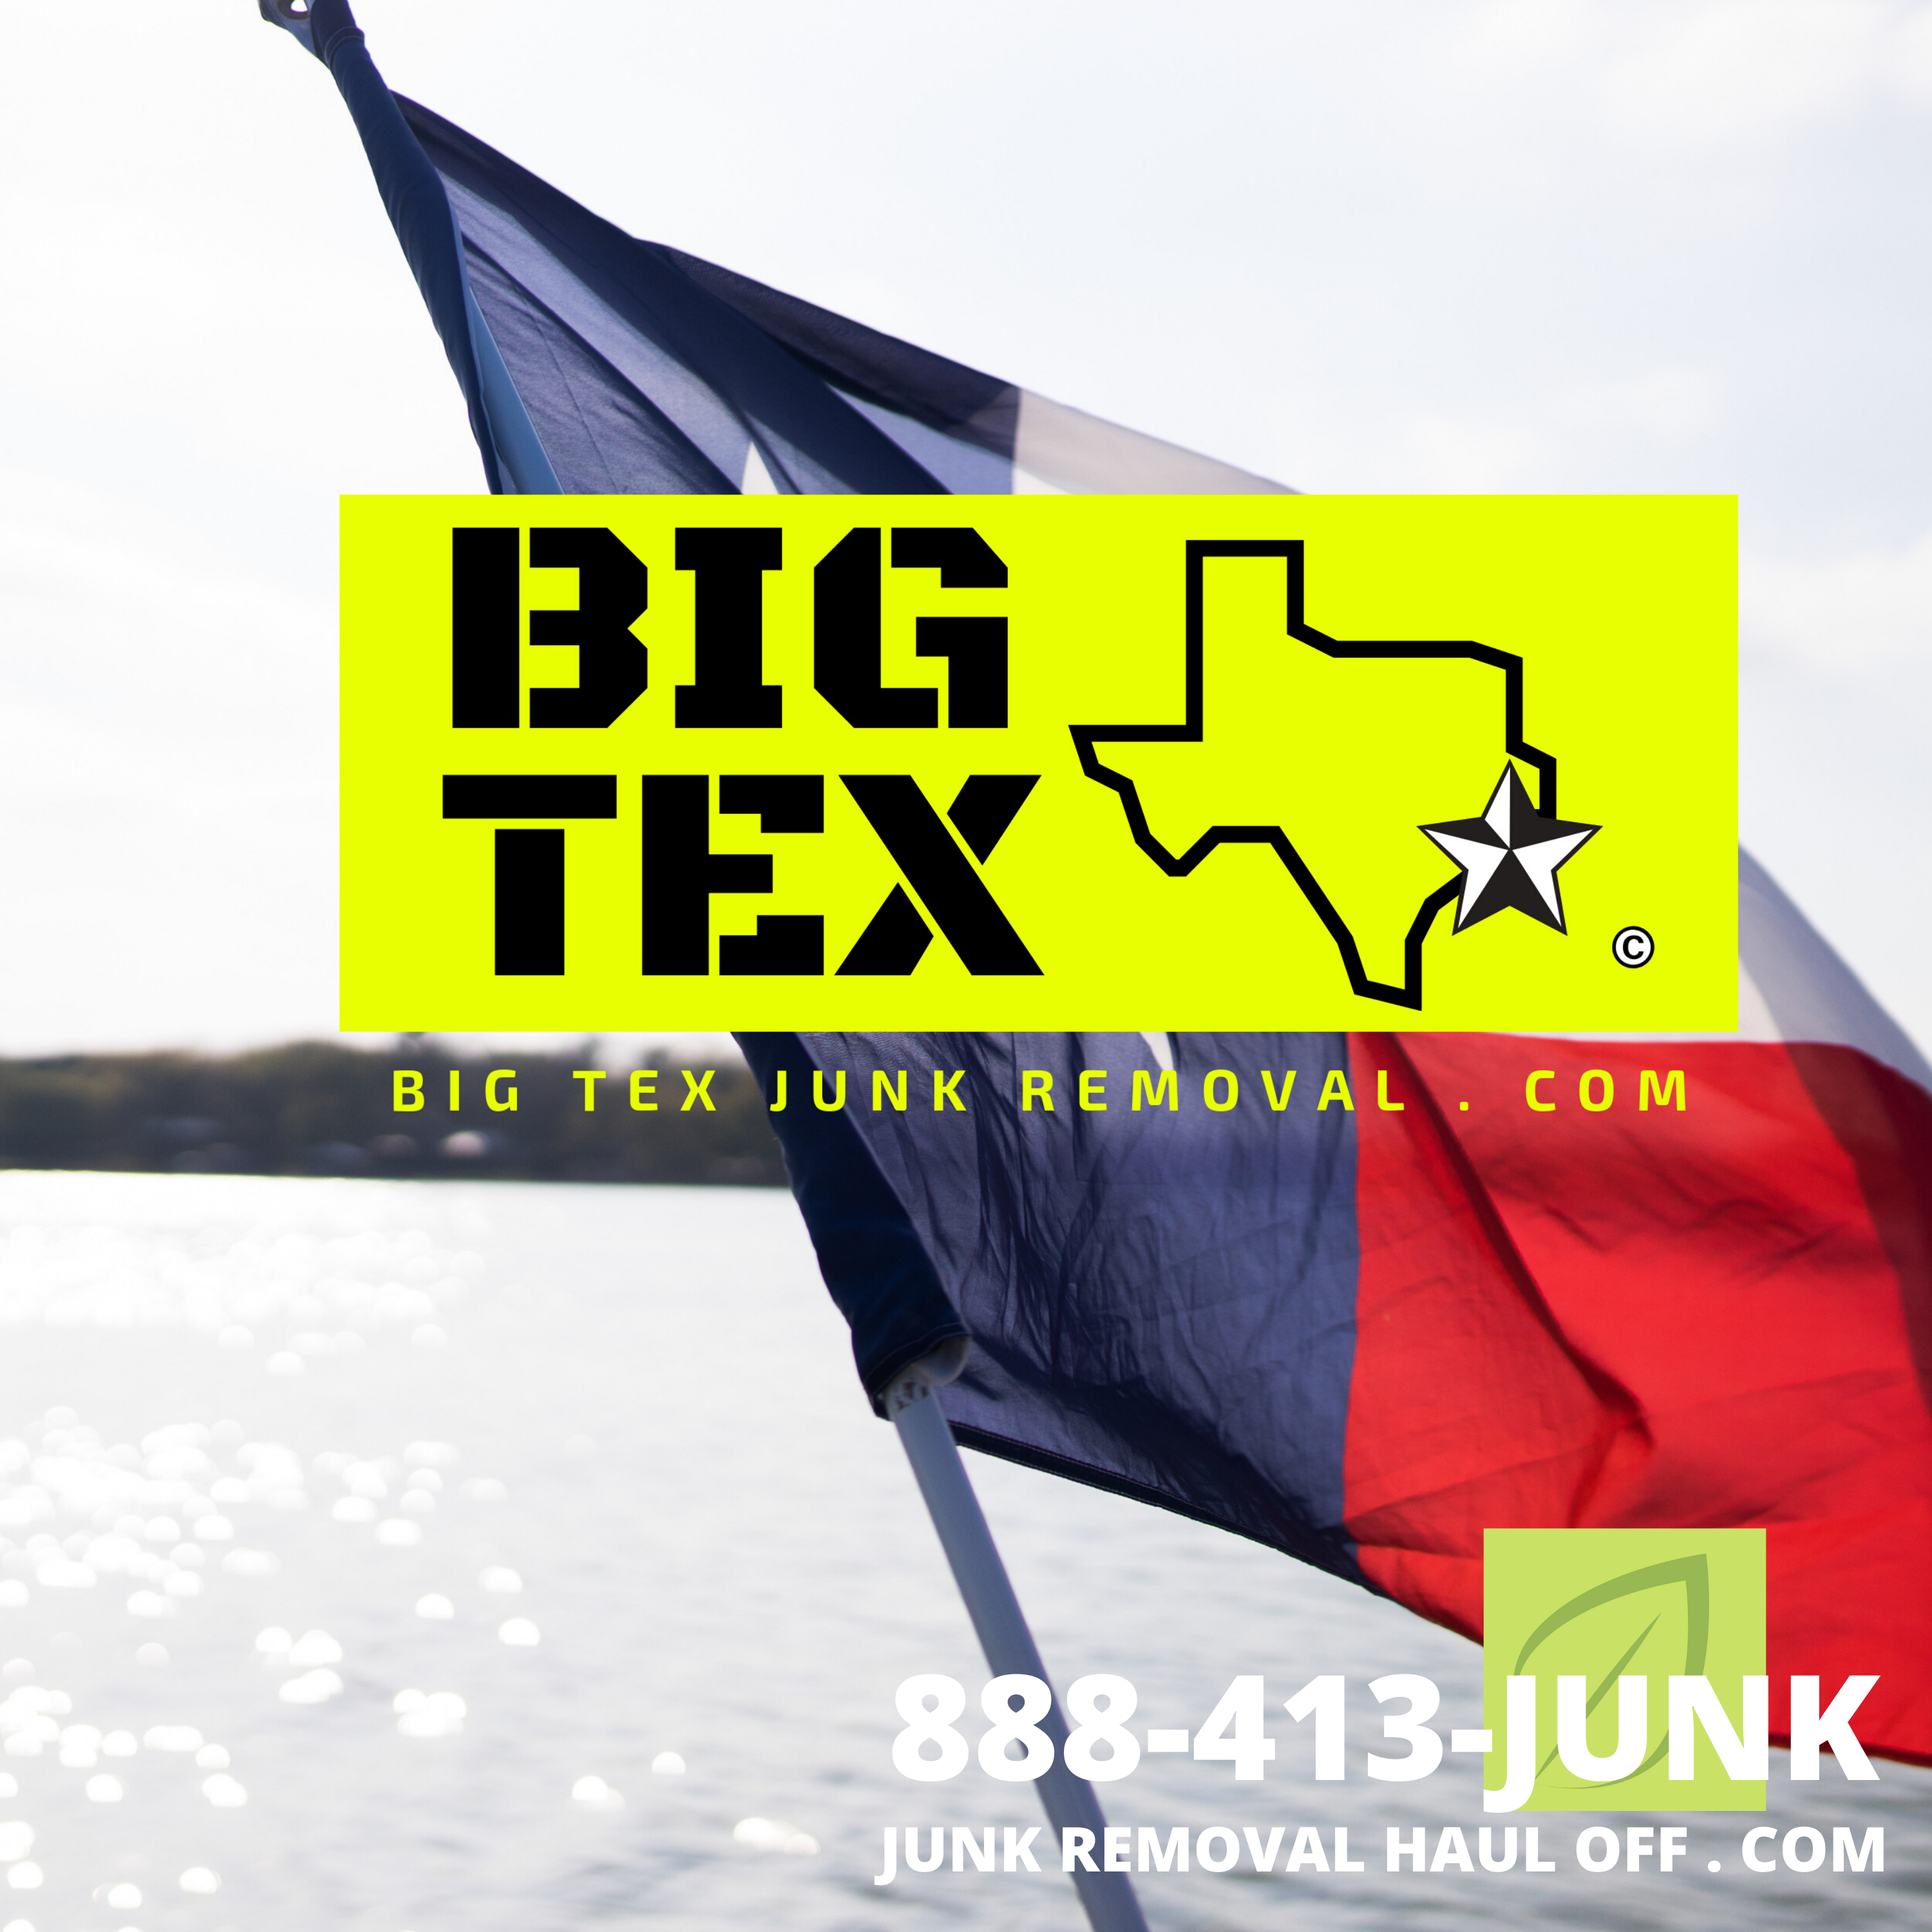 BIG TEX Junk Removal is Making Homes and Offices Shine in Dallas, TX